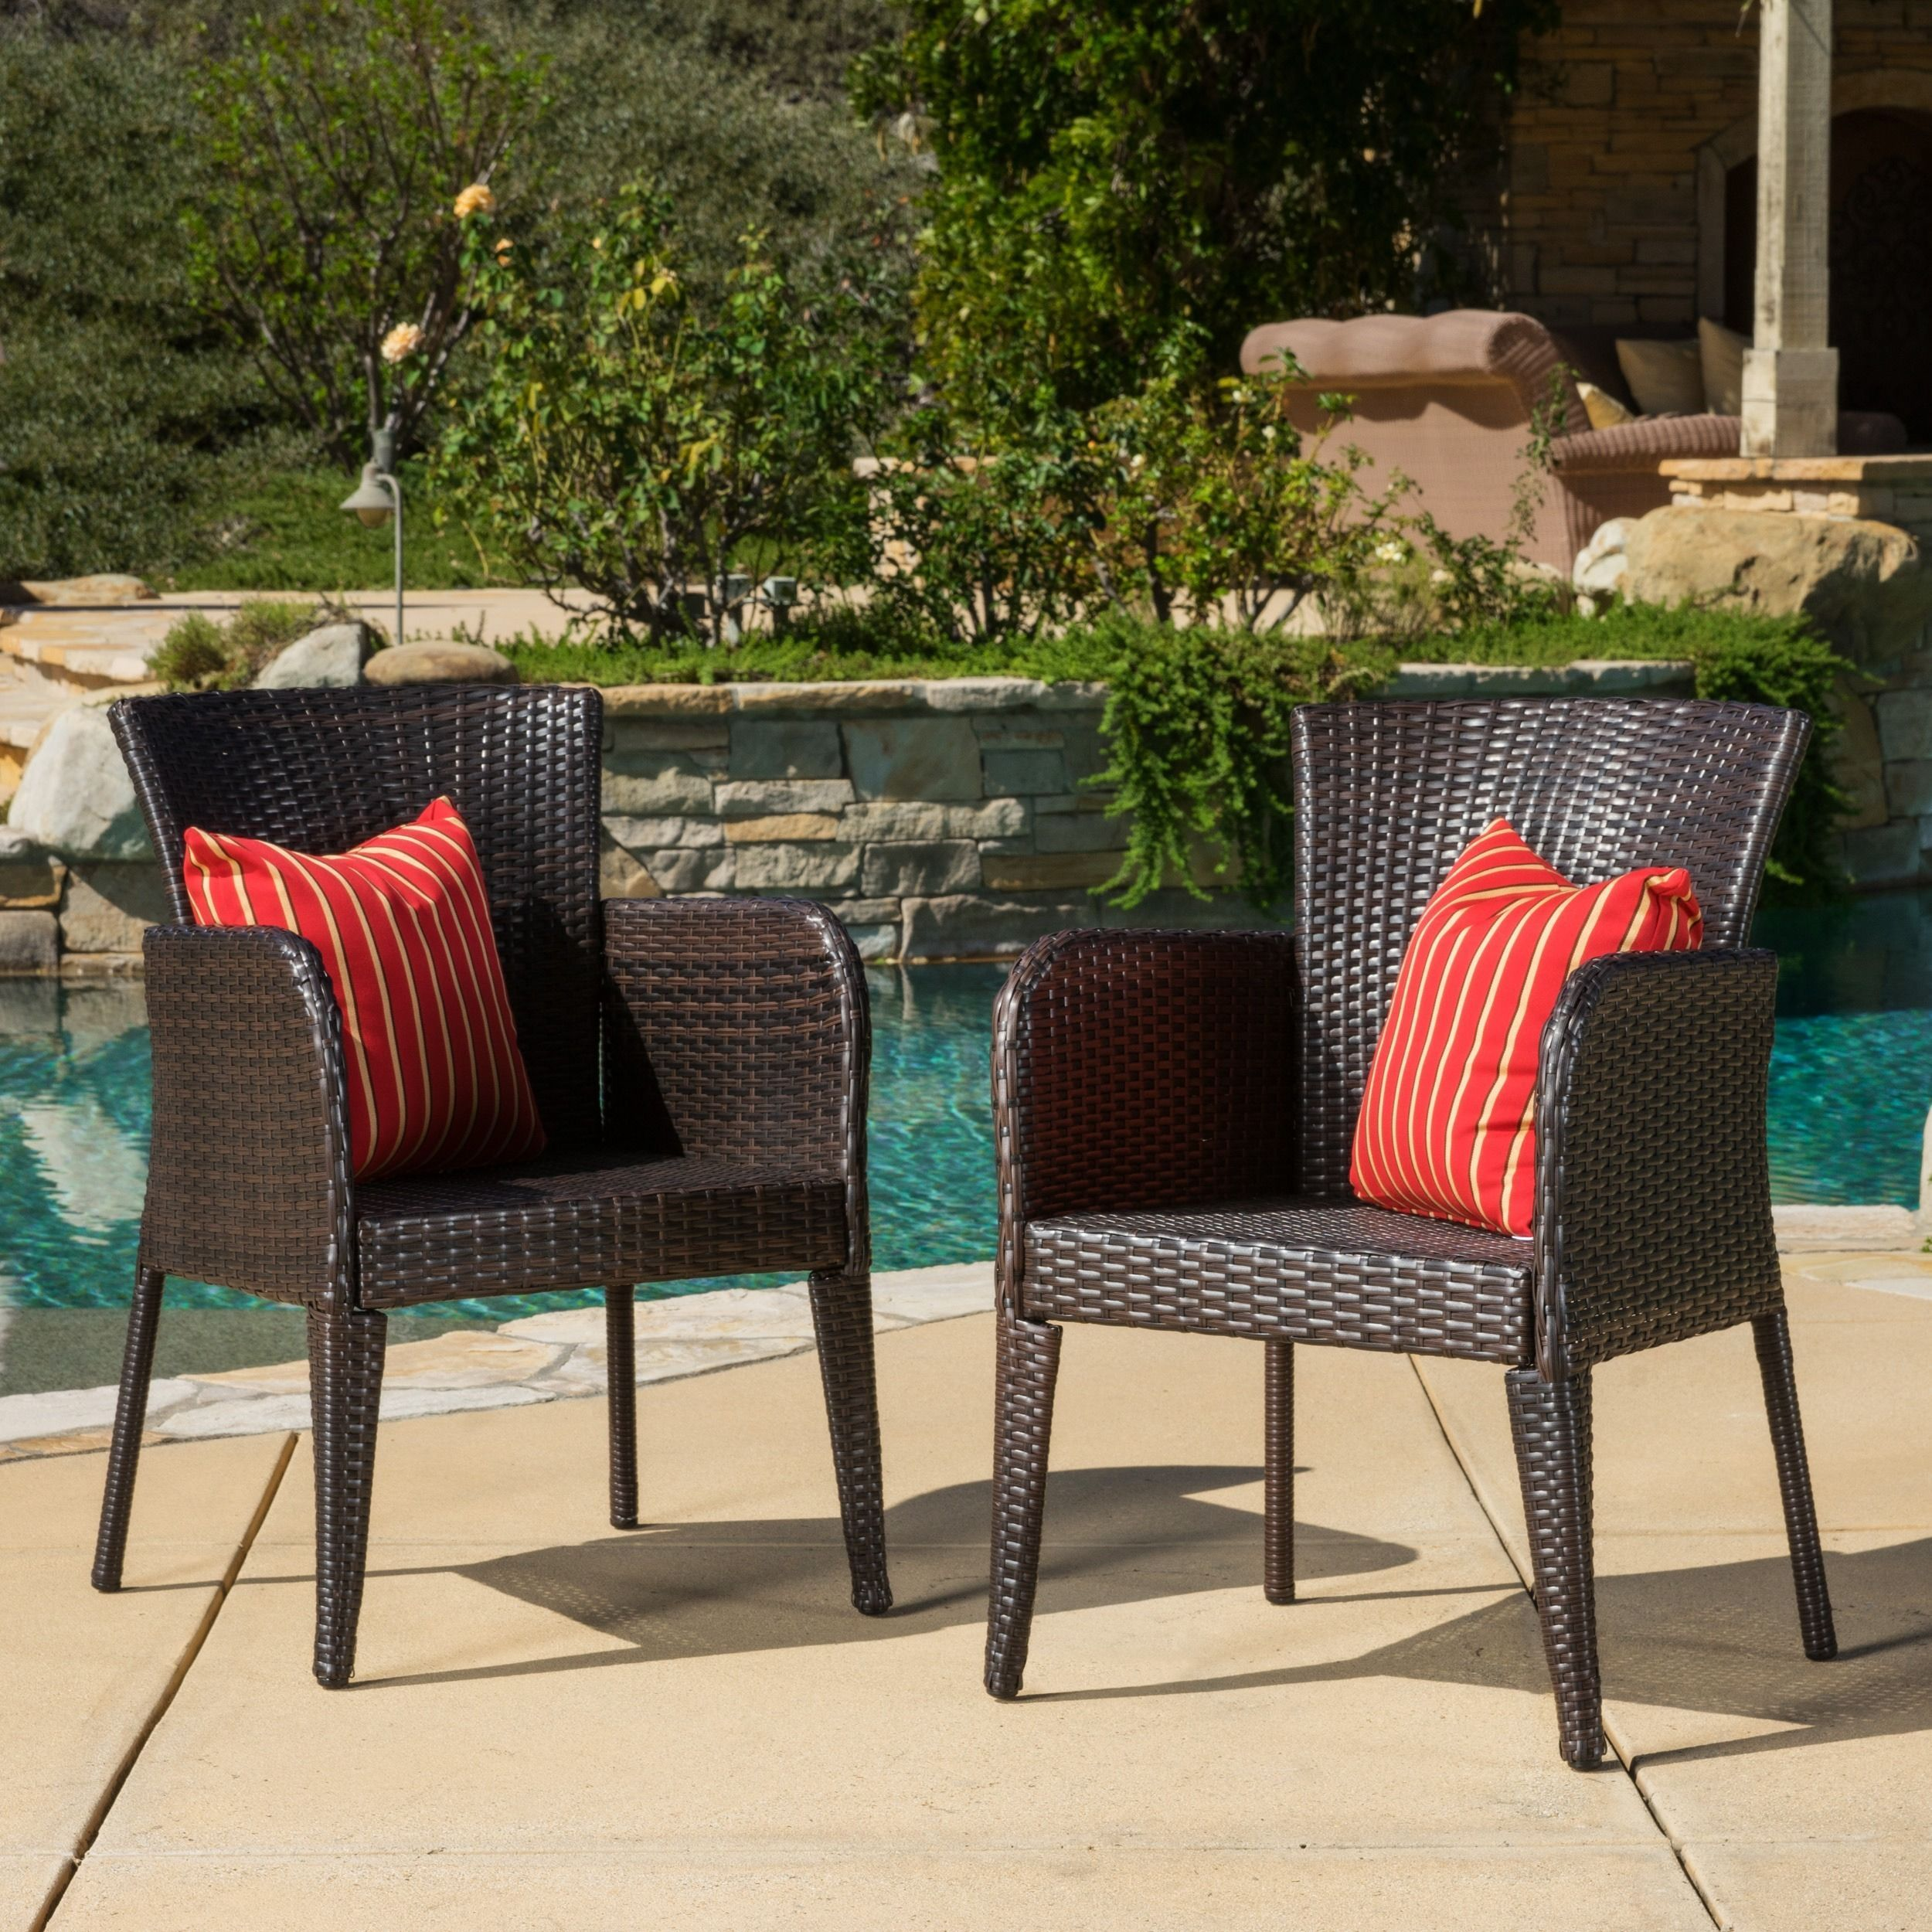 Anaya Outdoor Wicker Dining Chair Set of 2 by Christopher Knight